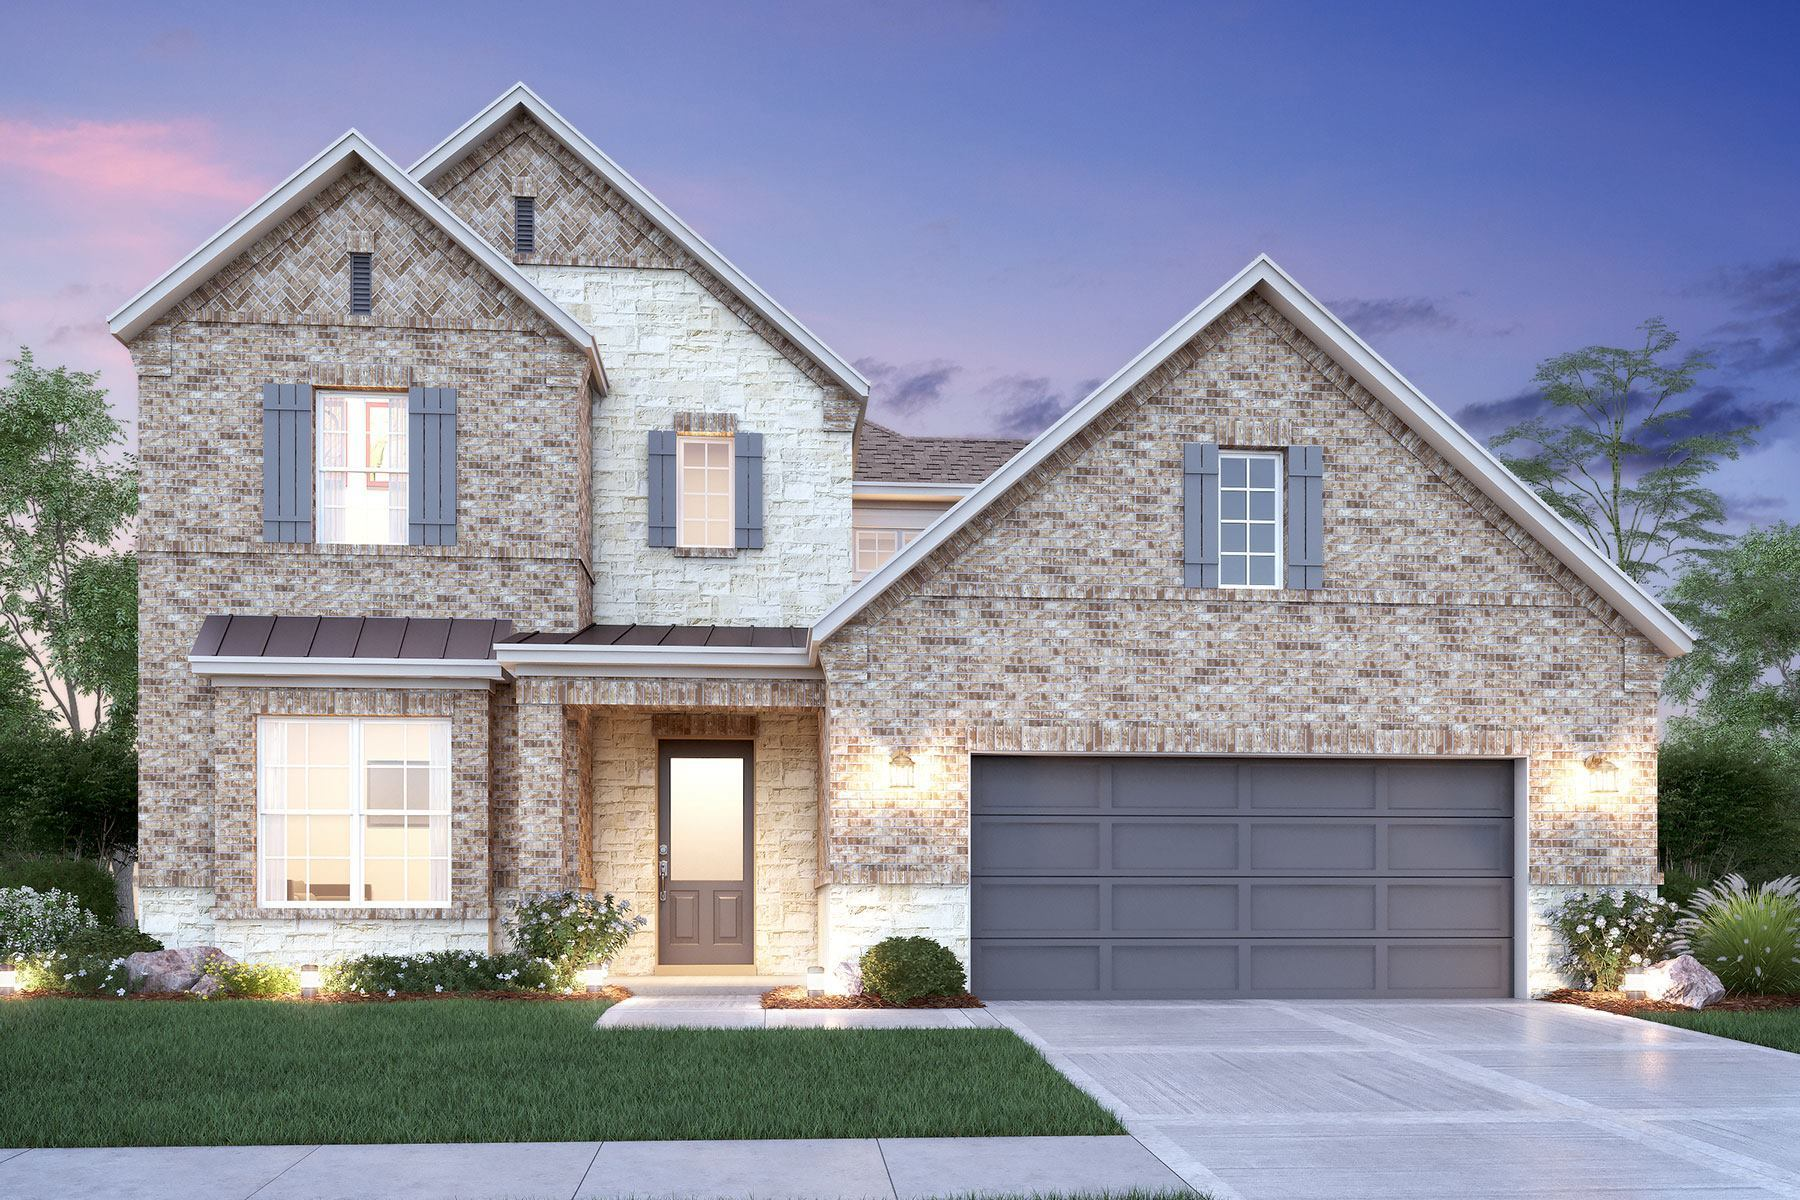 Here's the Innovative Image Of Patio Homes for Sale Katy Texas